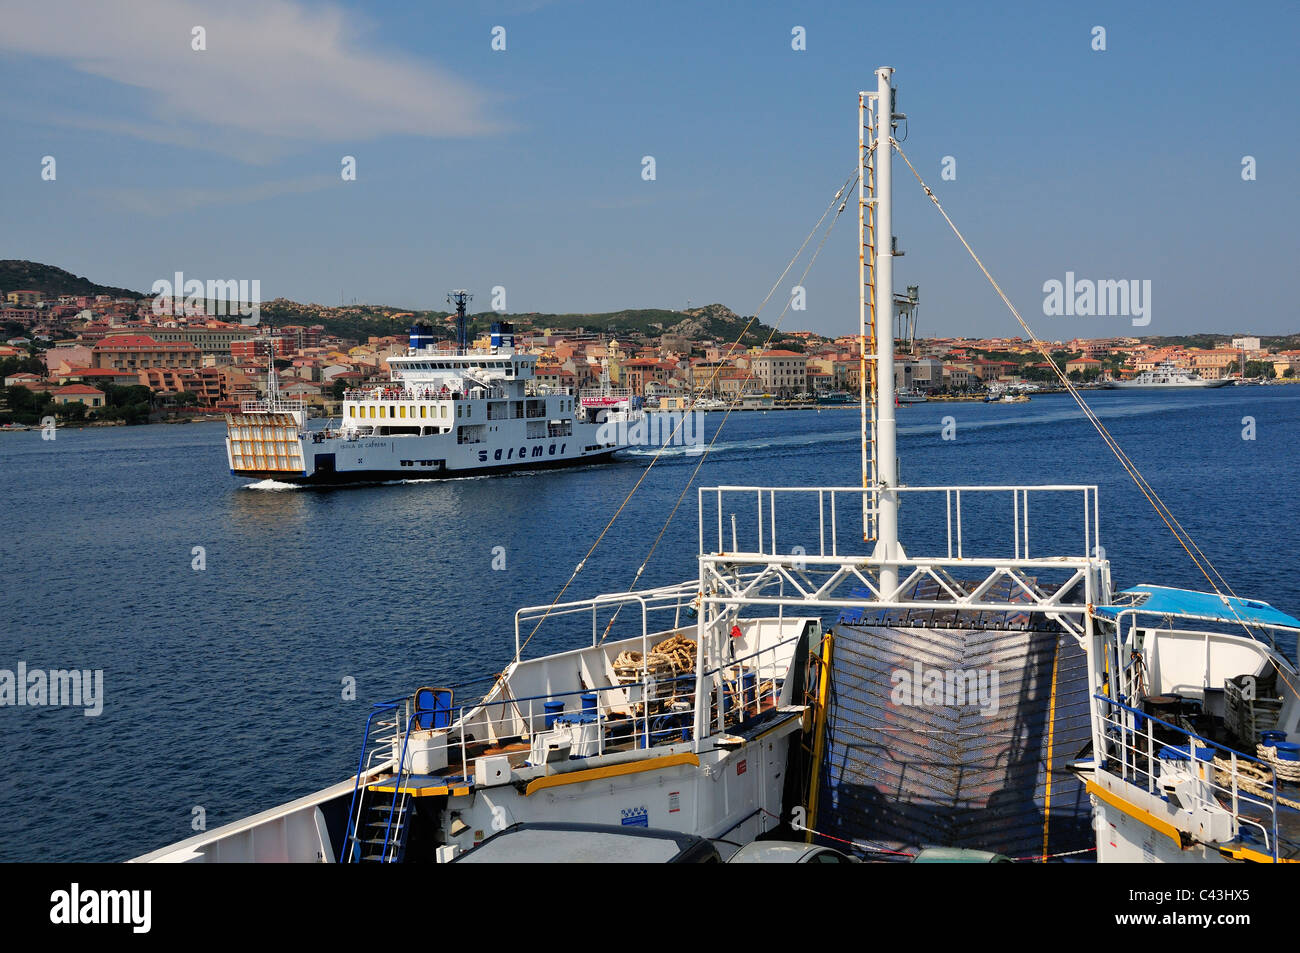 Ferries to and from Palau to La Maddalena (in view), Sardinia, Italy Stock Photo